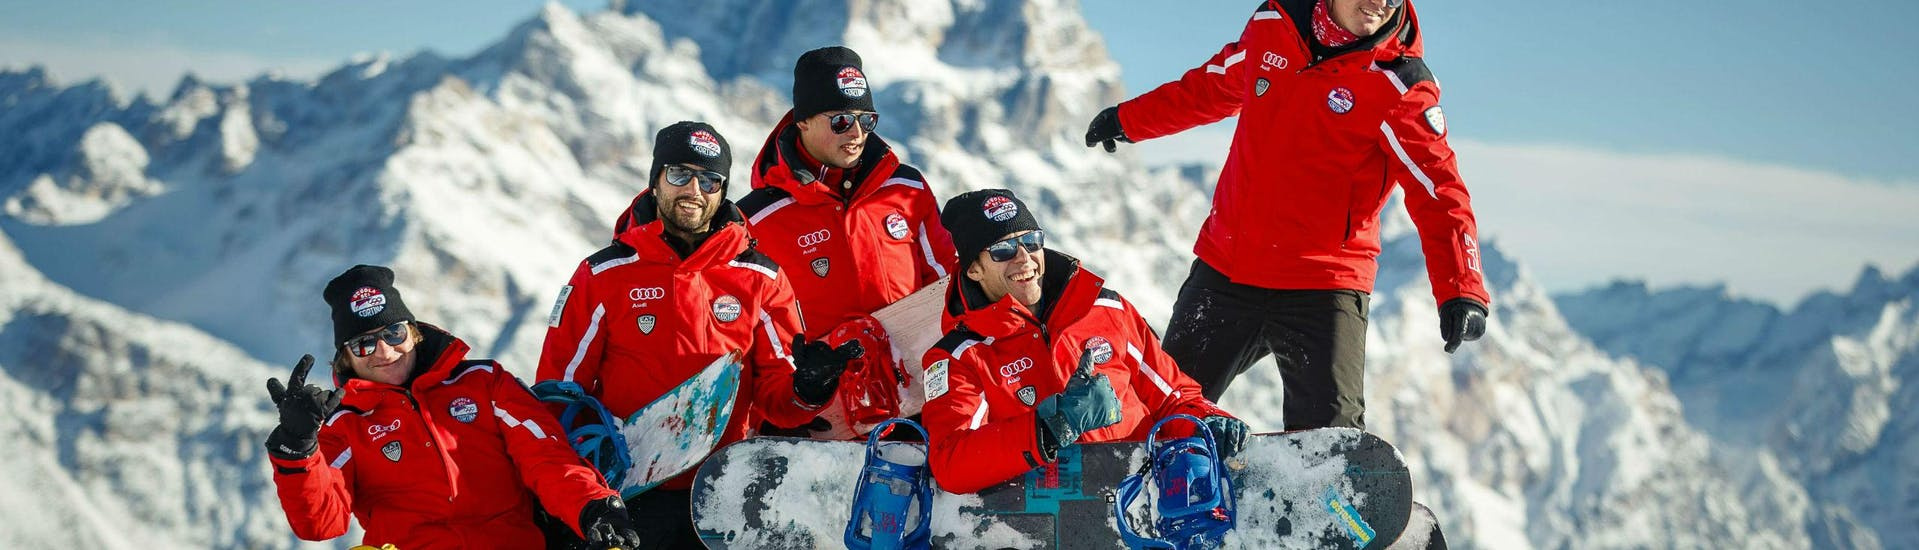 A group of ski instructors from the ski school Scuola Sci Cortina are posing with their snowboards on a heap of snow in the ski resort of Cortina d'Ampezzo, where they  offer their broad selection of ski lessons.